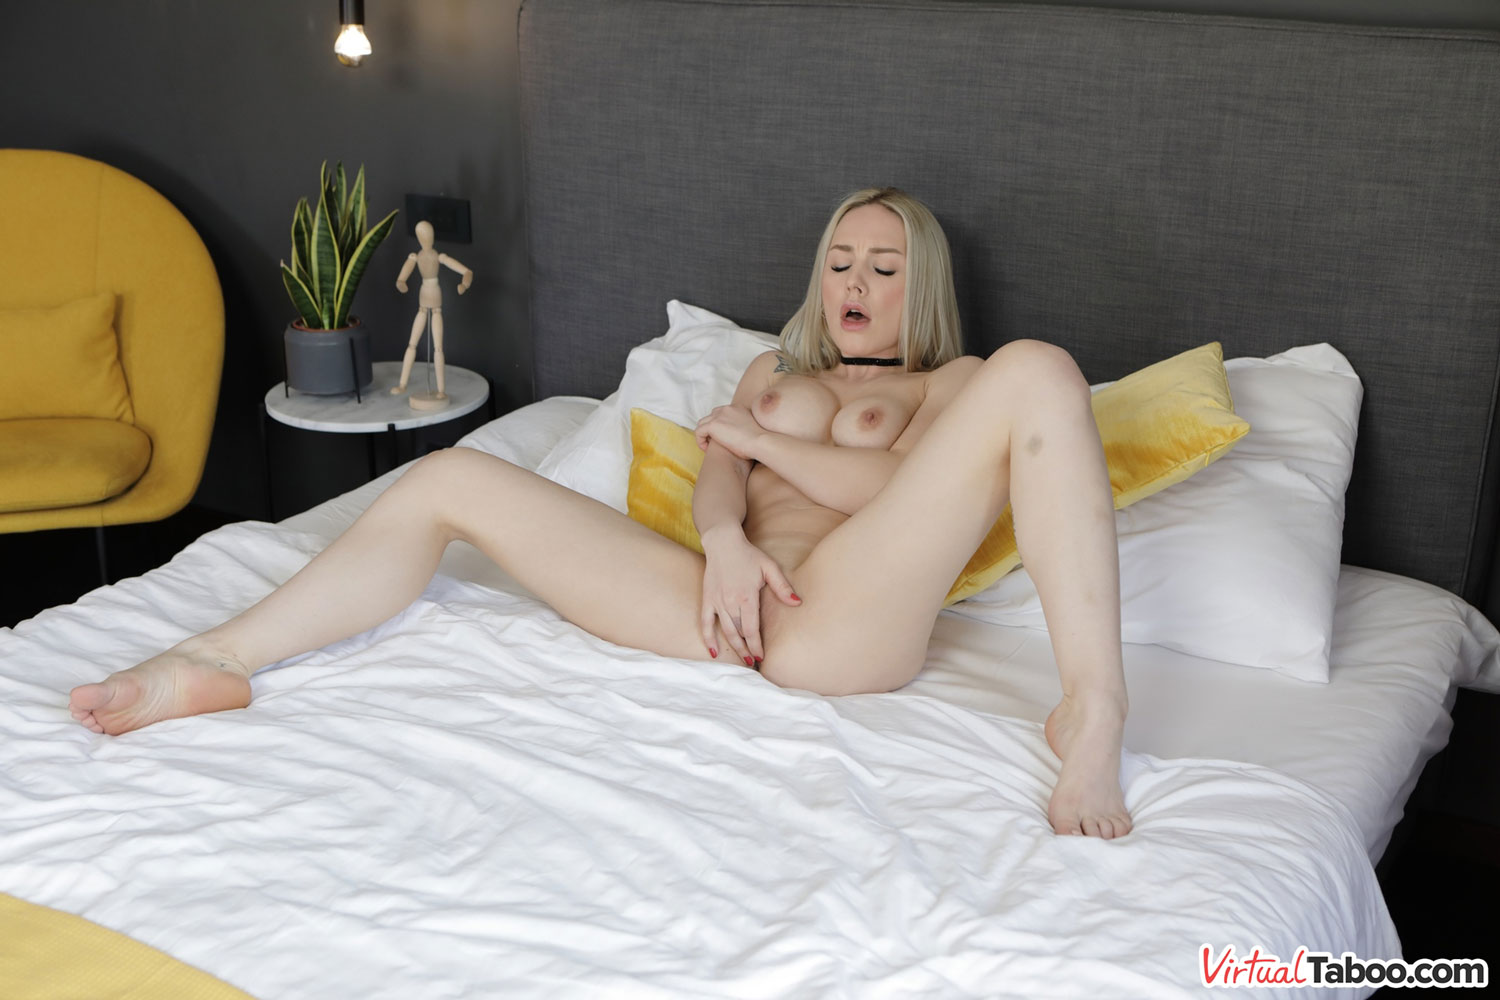 For Your Eyes Only – Angie Lynx